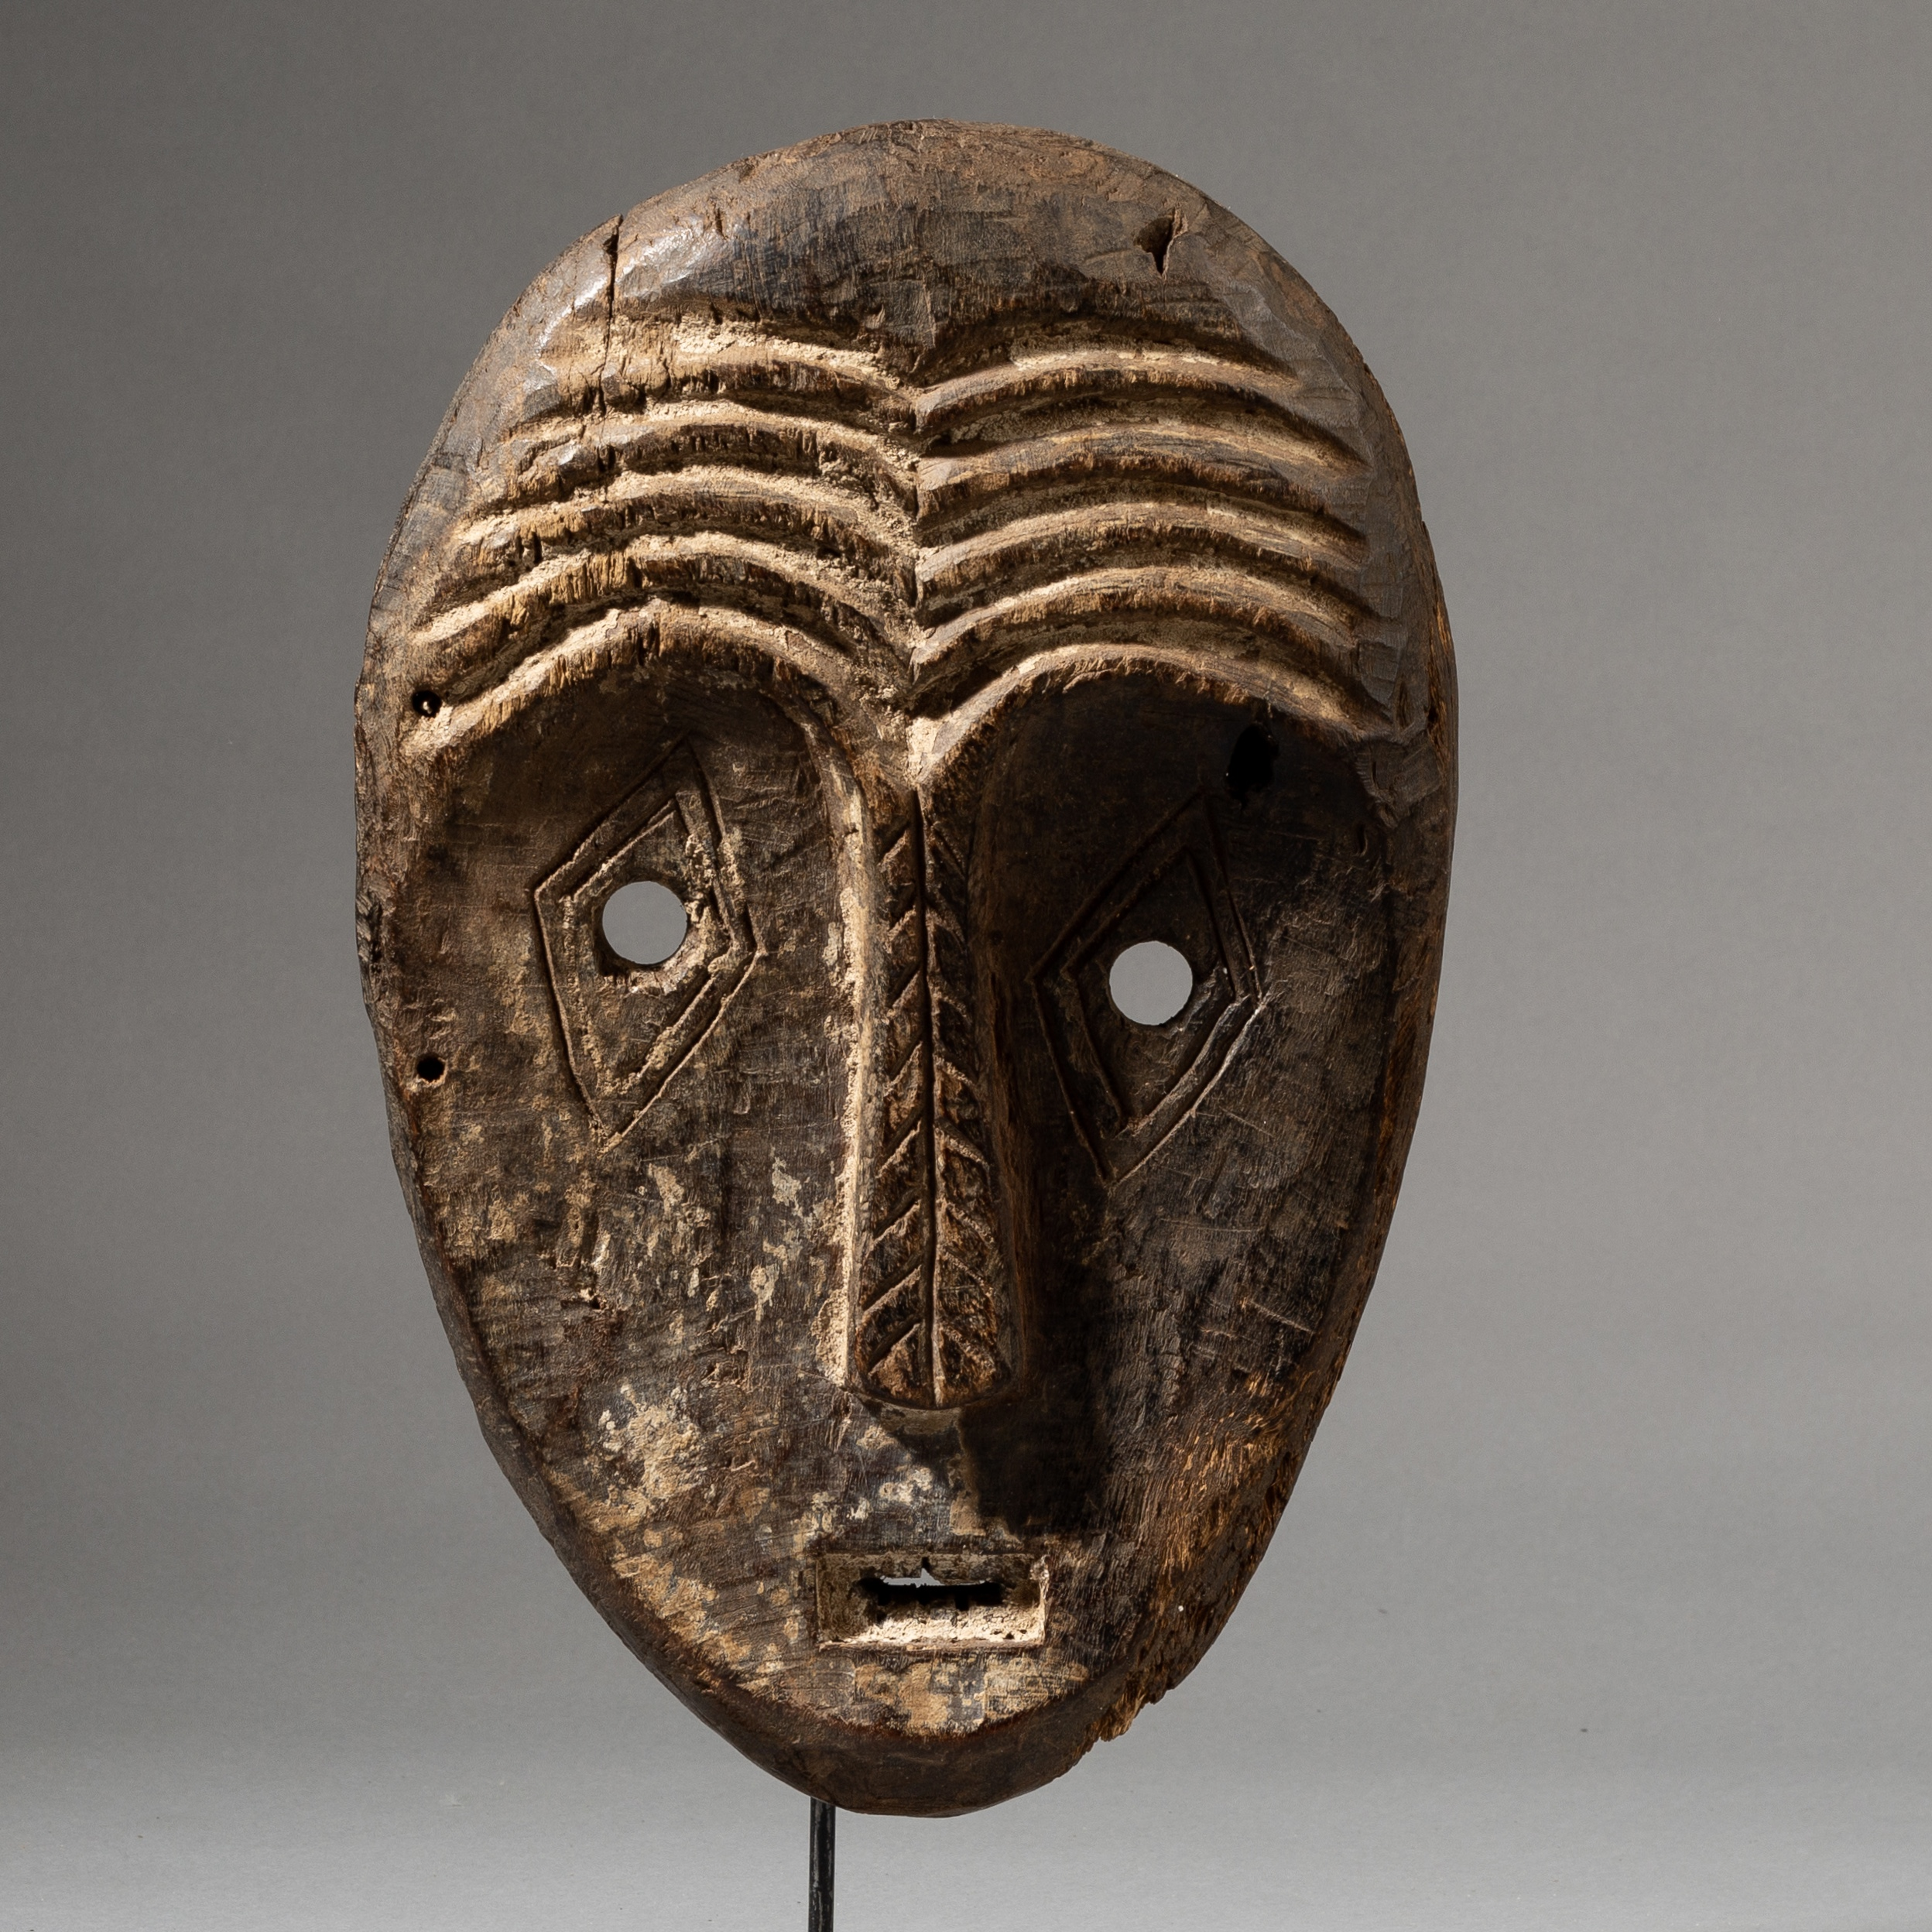 SD AN EXPRESSIVE  LEGA MASK FROM THE CONGO, AFRICA ( No 3575 )